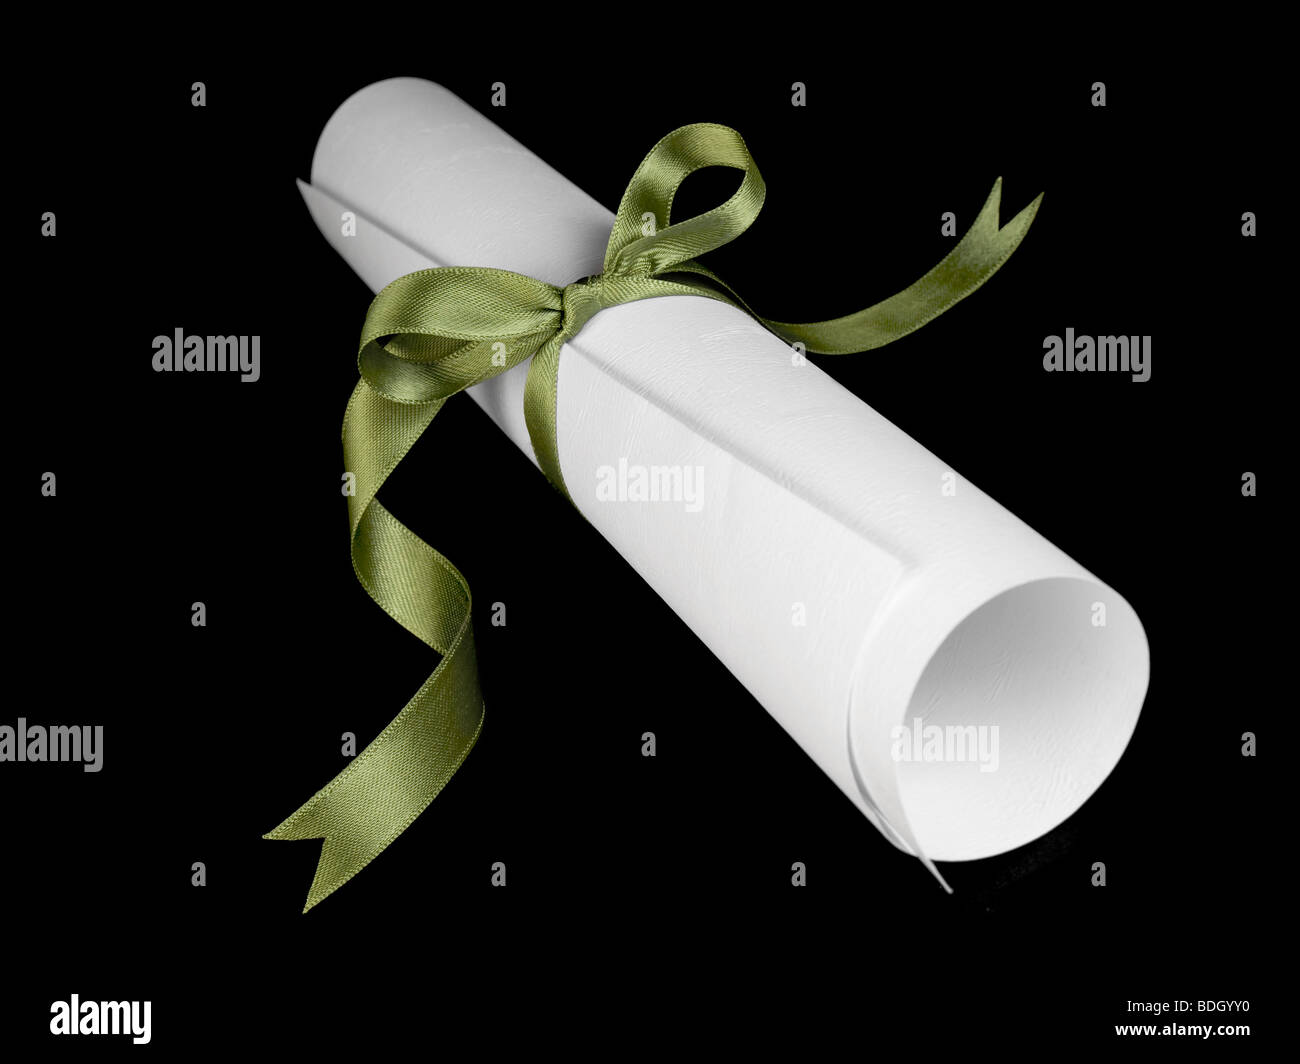 Diploma with a green silk ribbon, isolated on black background. Stock Photo